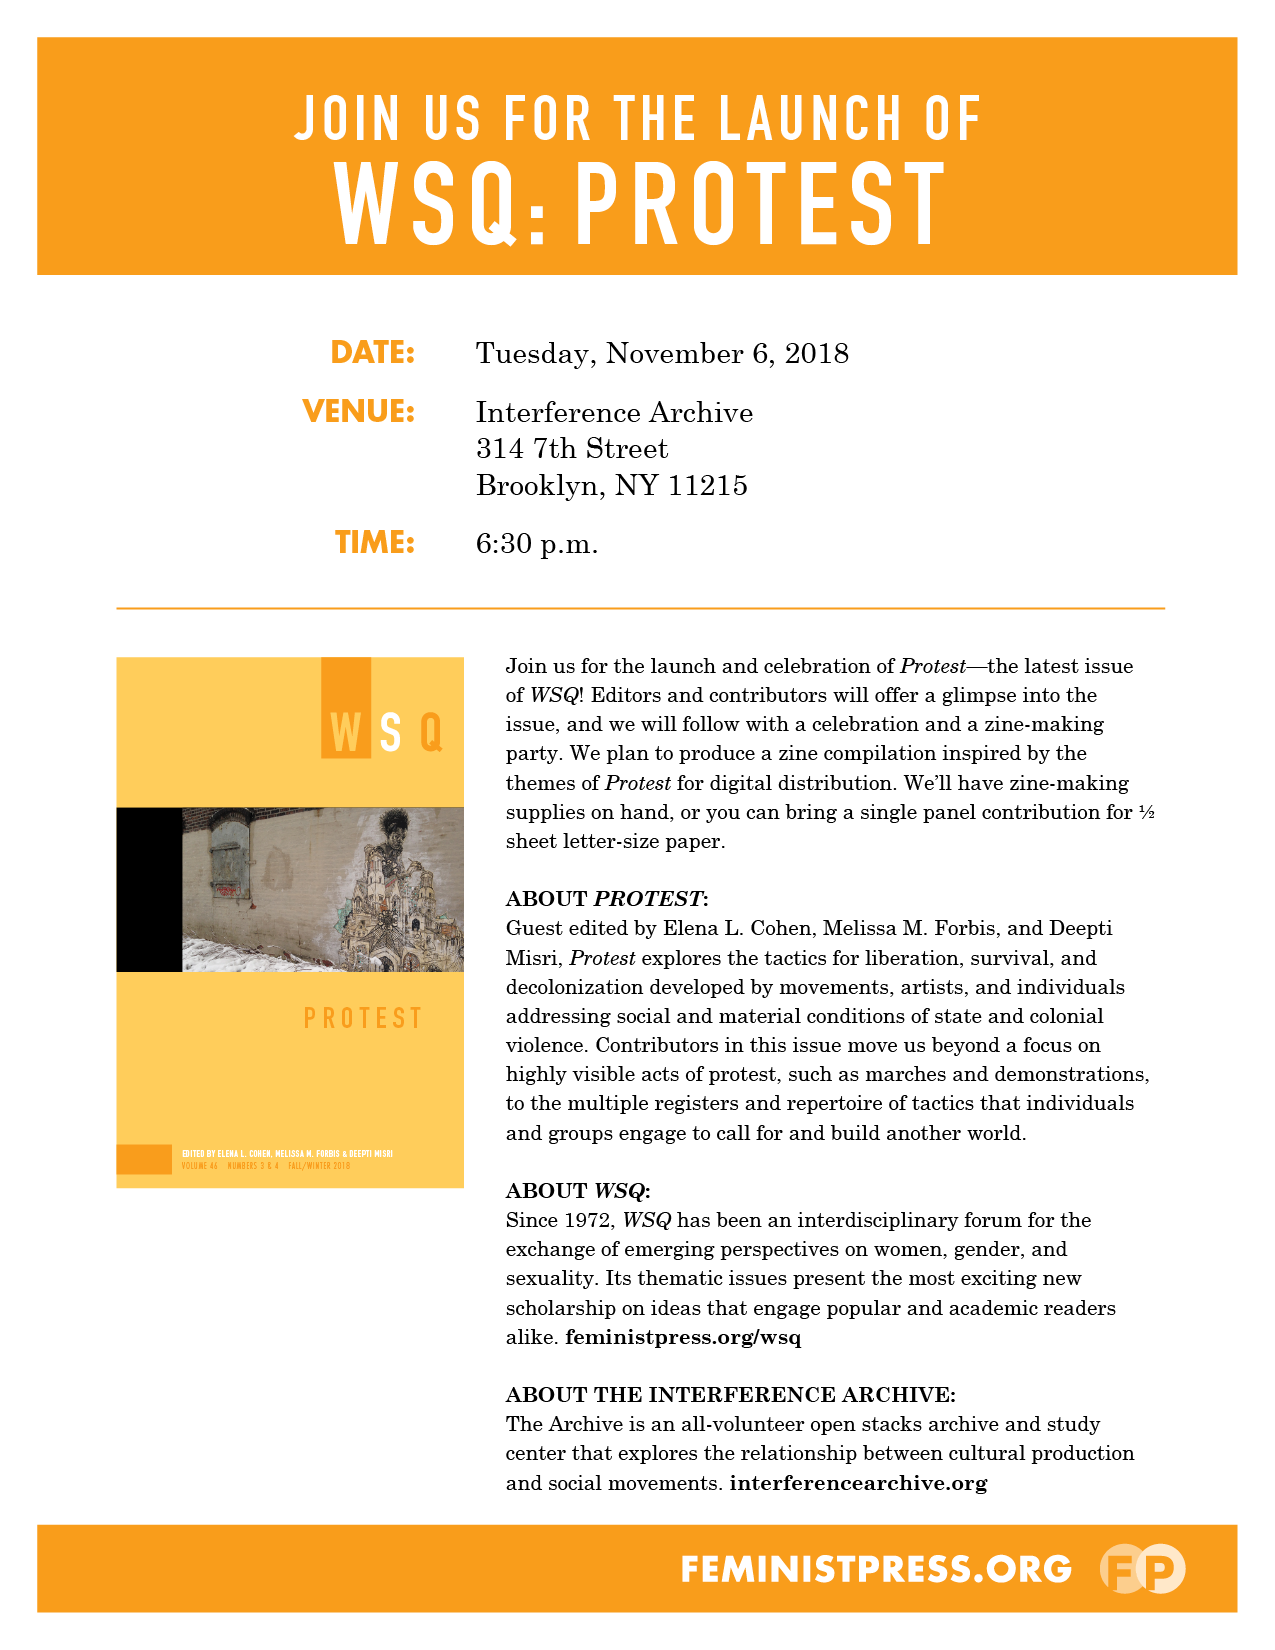 WSQ_PROTEST_launch.png